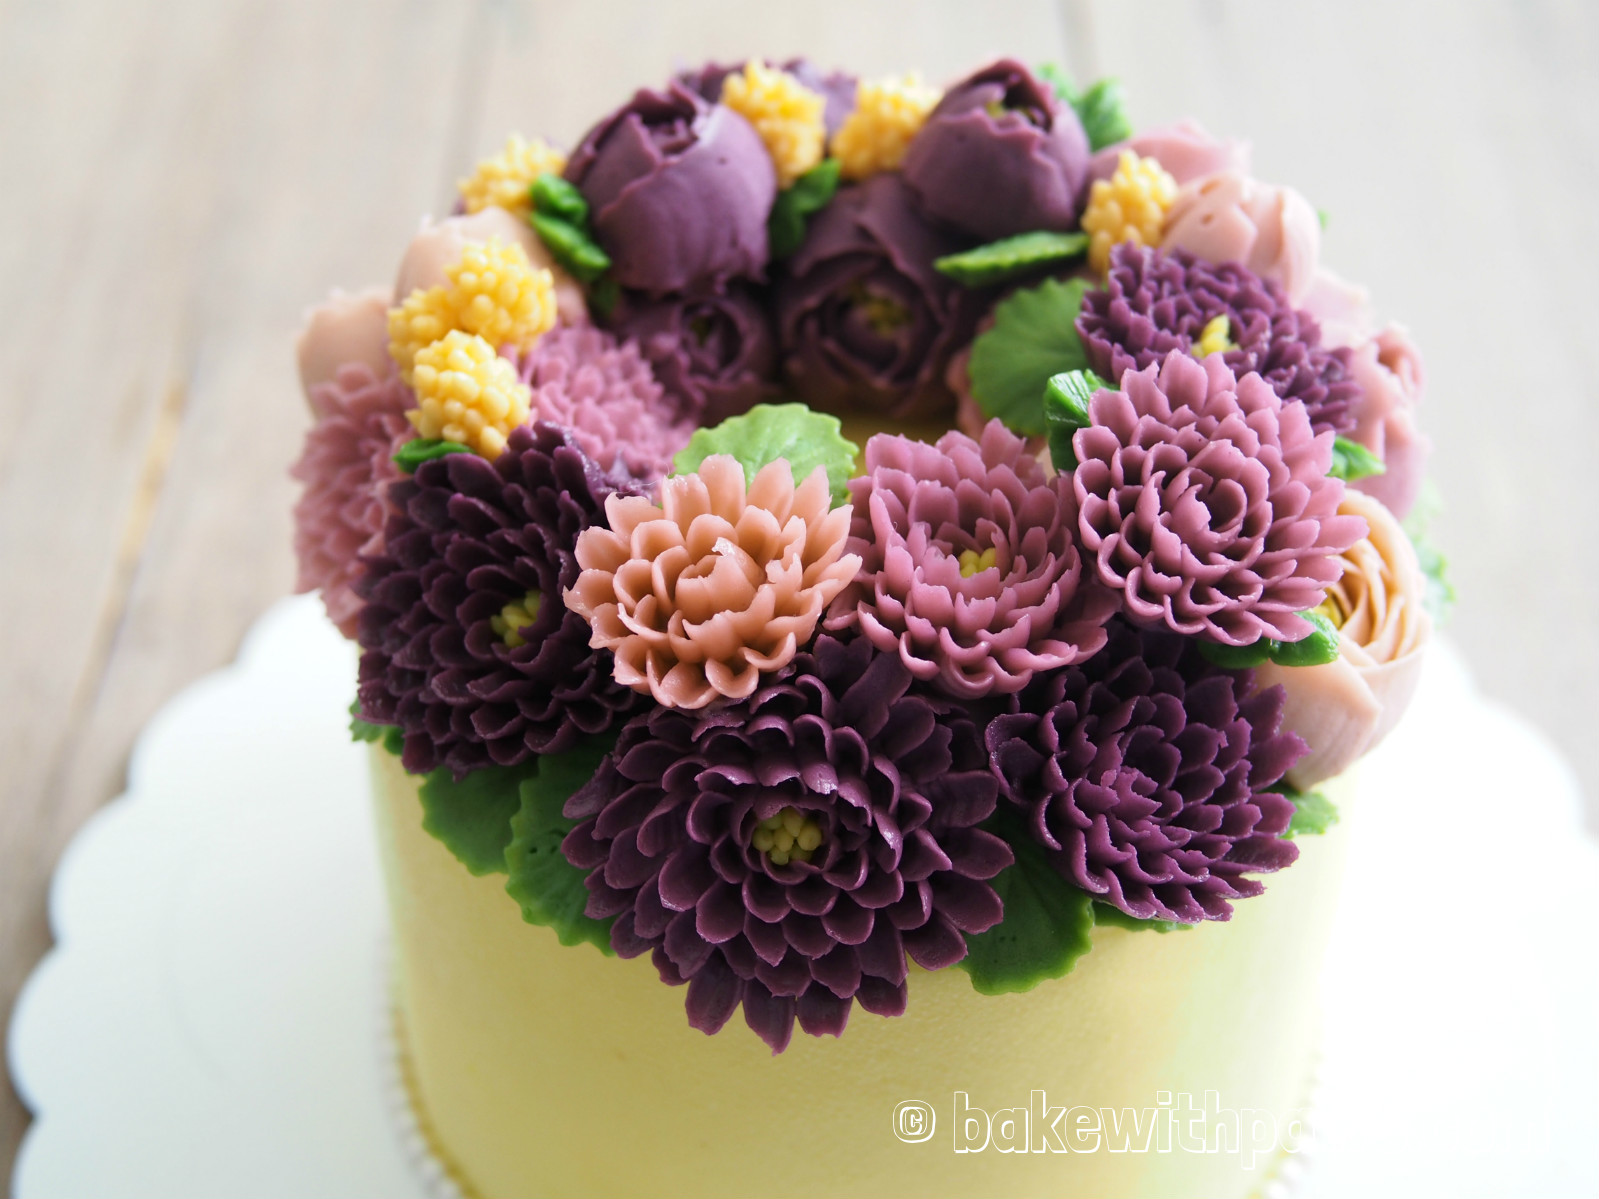 Korean Style Buttercream Flowers Cake 9 Bake With Paws